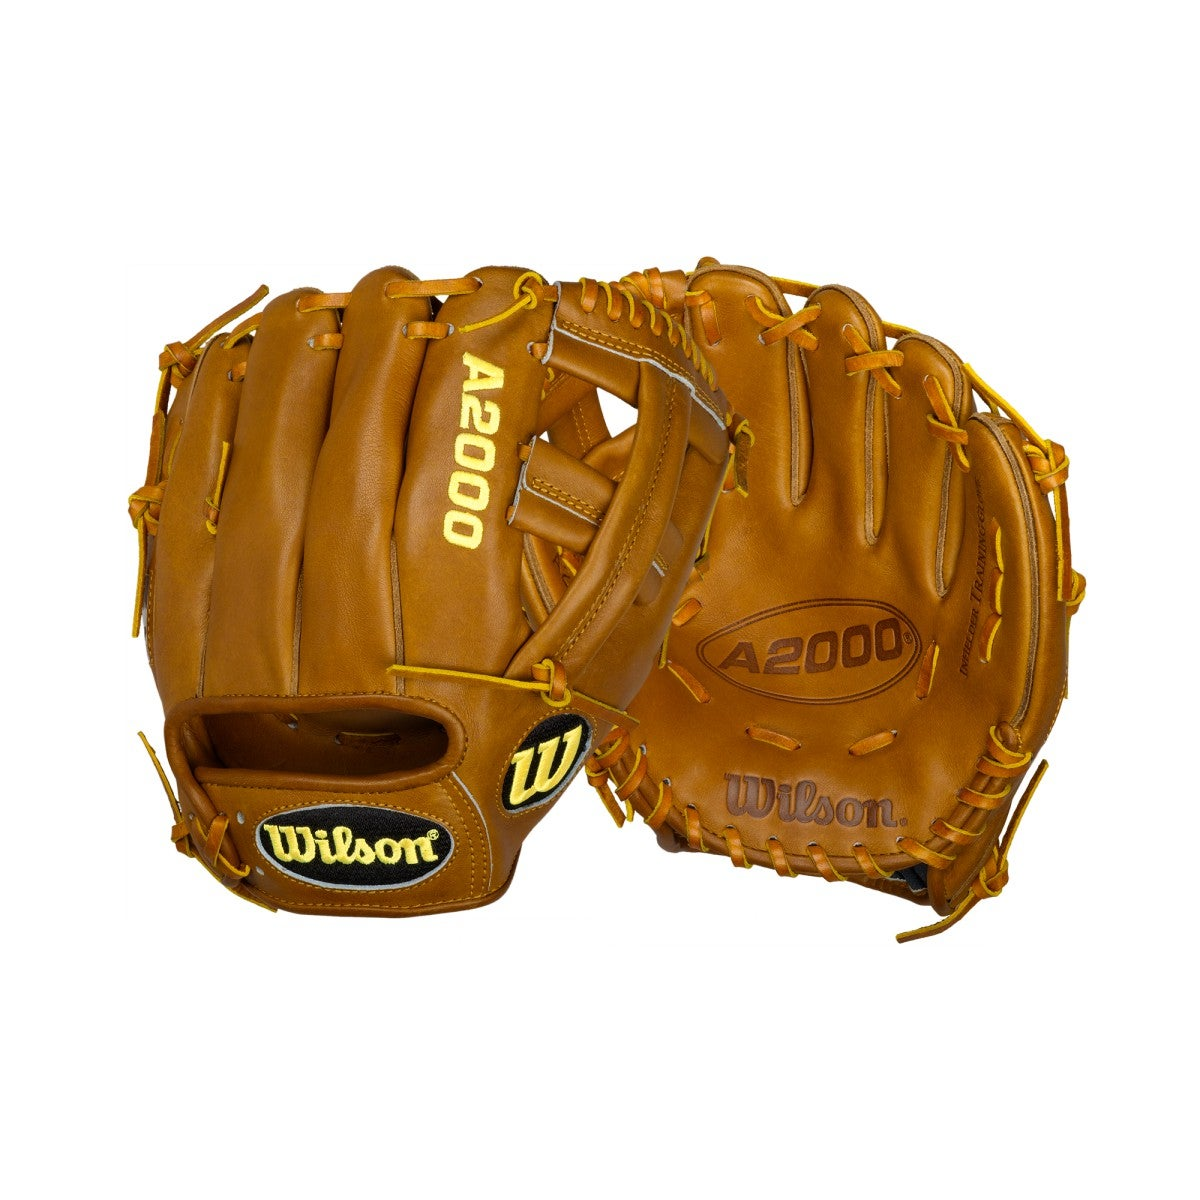 A2000 INFIELD TRAINING GLOVE - RIGHT HAND THROW, 9.50 IN